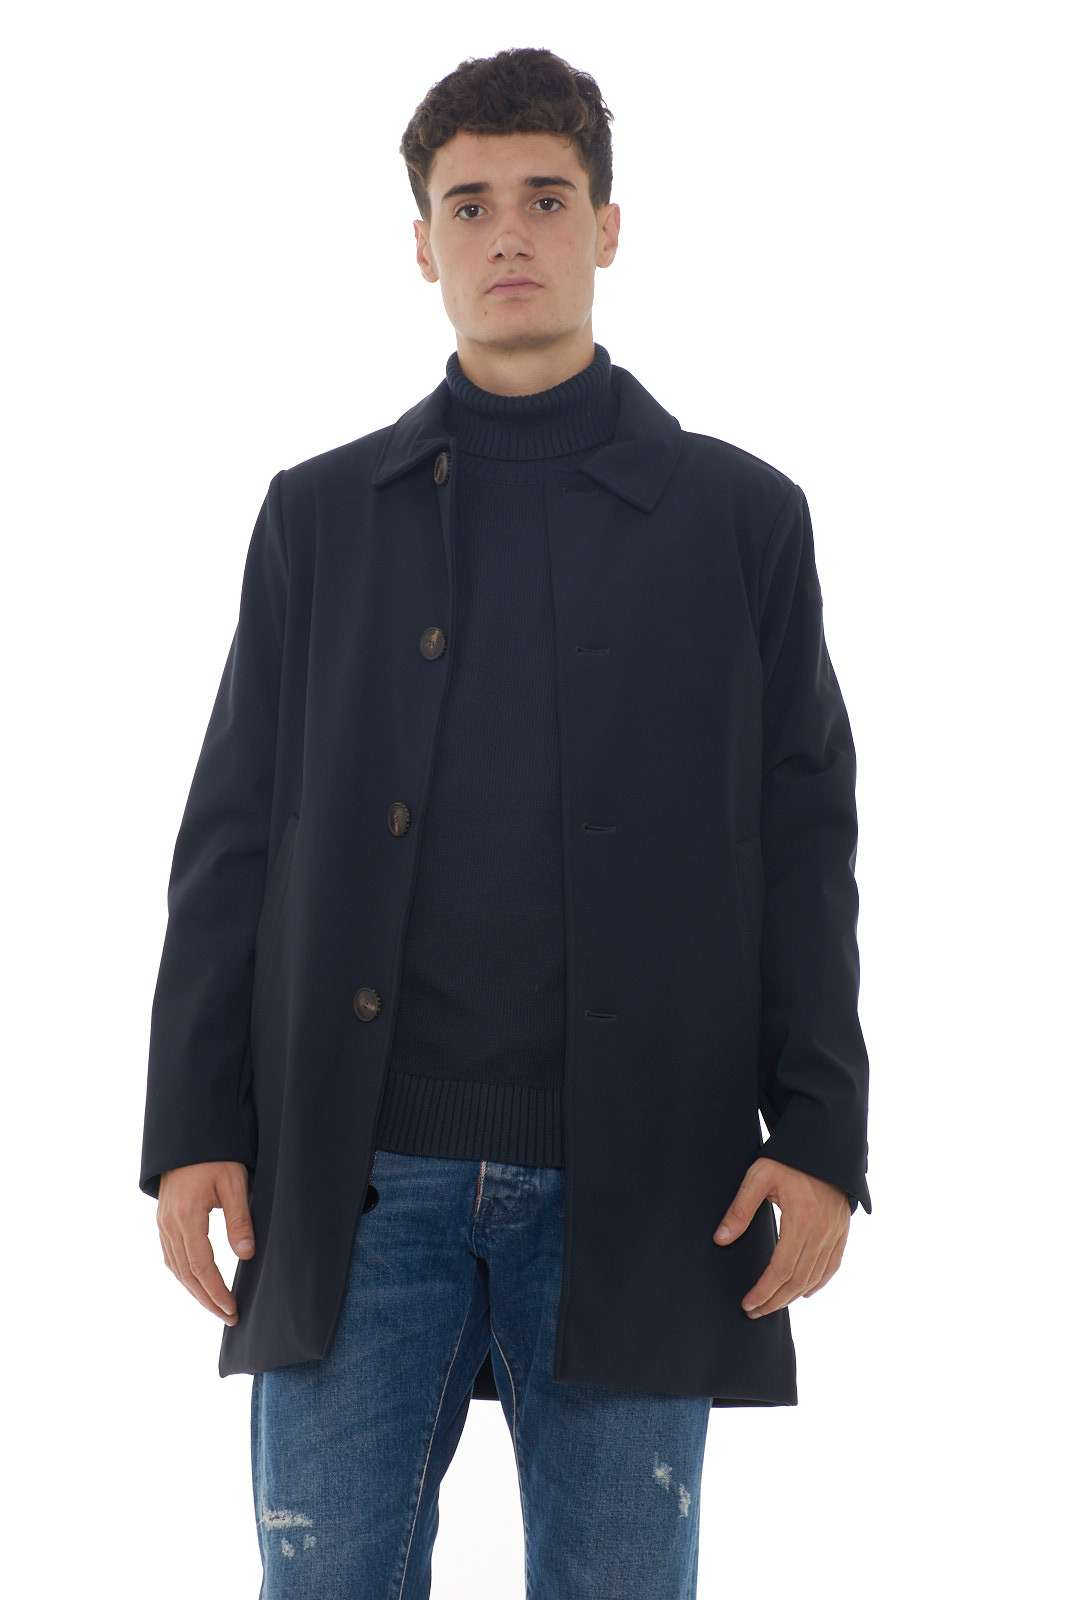 https://www.parmax.com/media/catalog/product/a/i/AI-outlet_parmax-trench-uomo-RRD-W19035-A.jpg